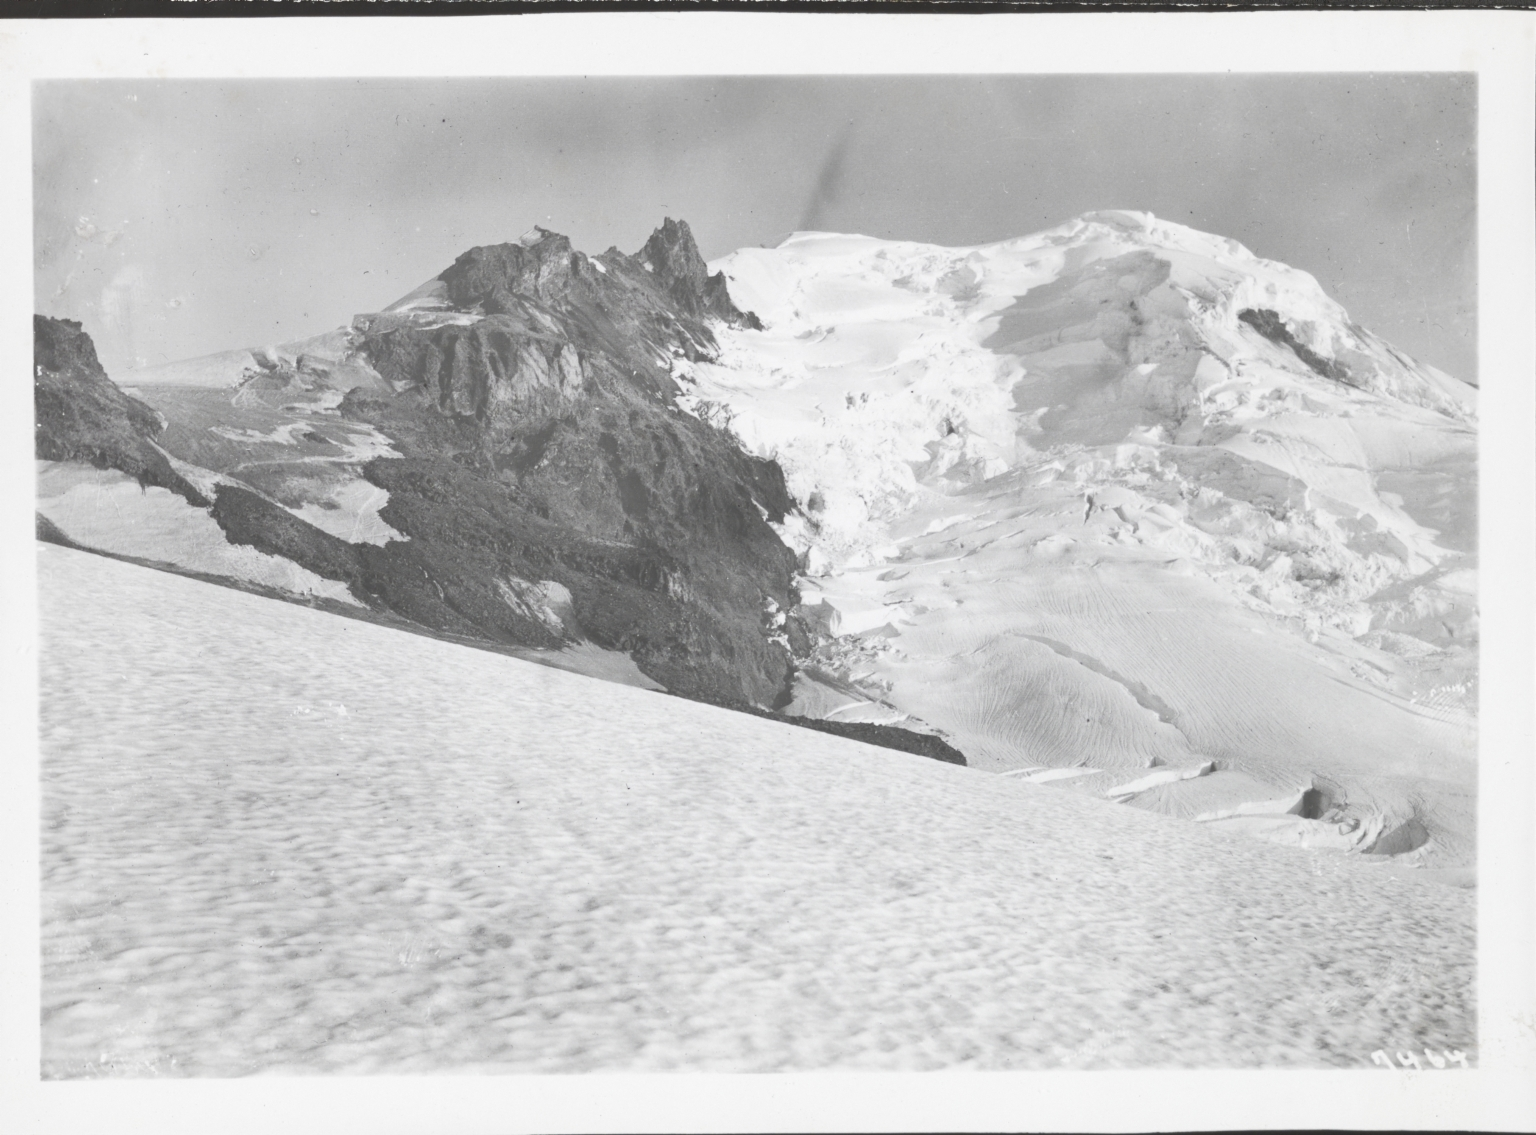 Roosevelt Glacier, Washington